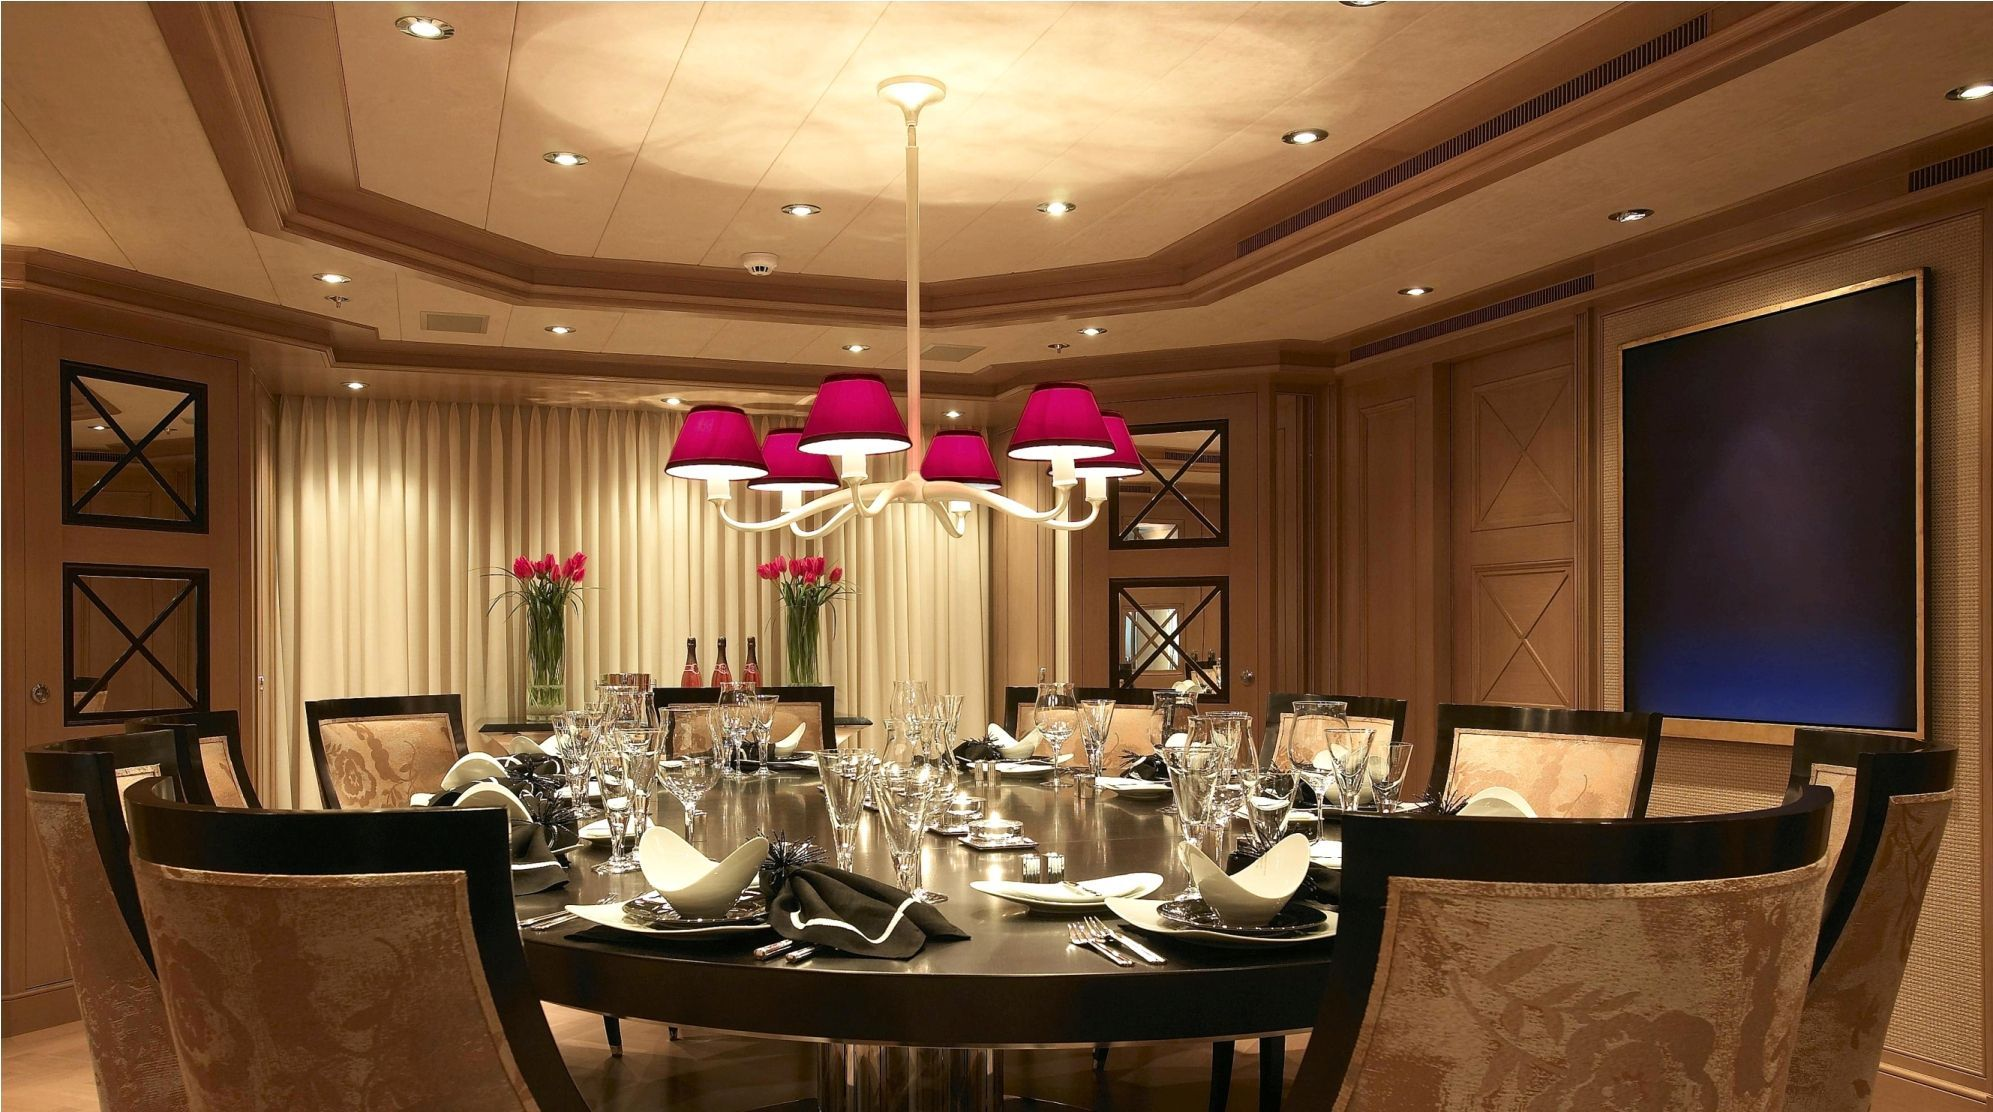 Delicieux Dining Room, Attractive Chandelier Hanging Above Large Chandelier With  Rounded Table Top Plus 10 Dining Chairs Applied In Elegant Dining Room  Design Also ...